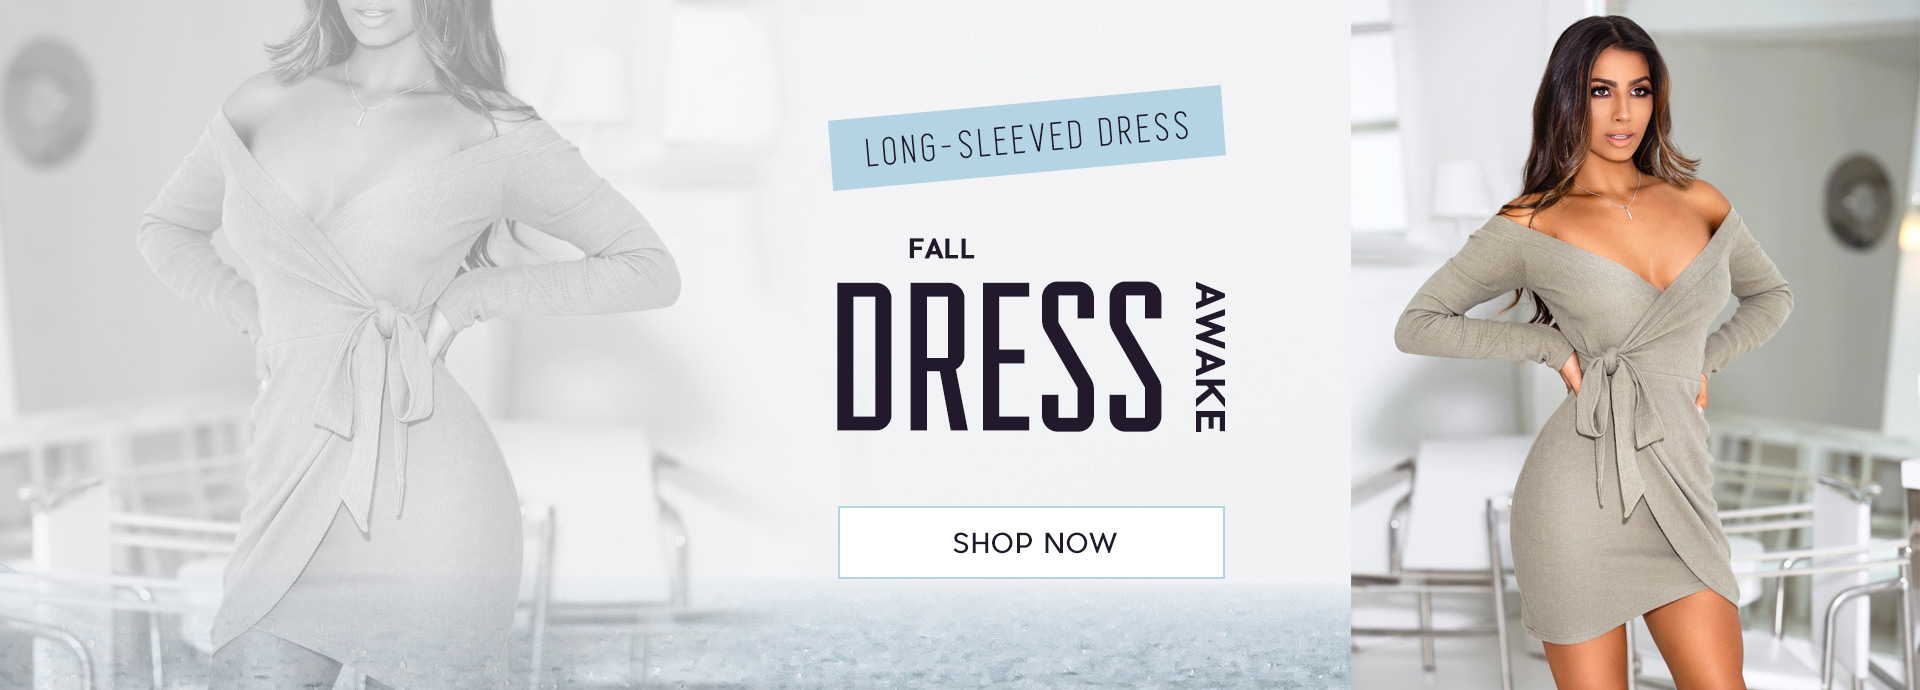 Fall Dress Awake